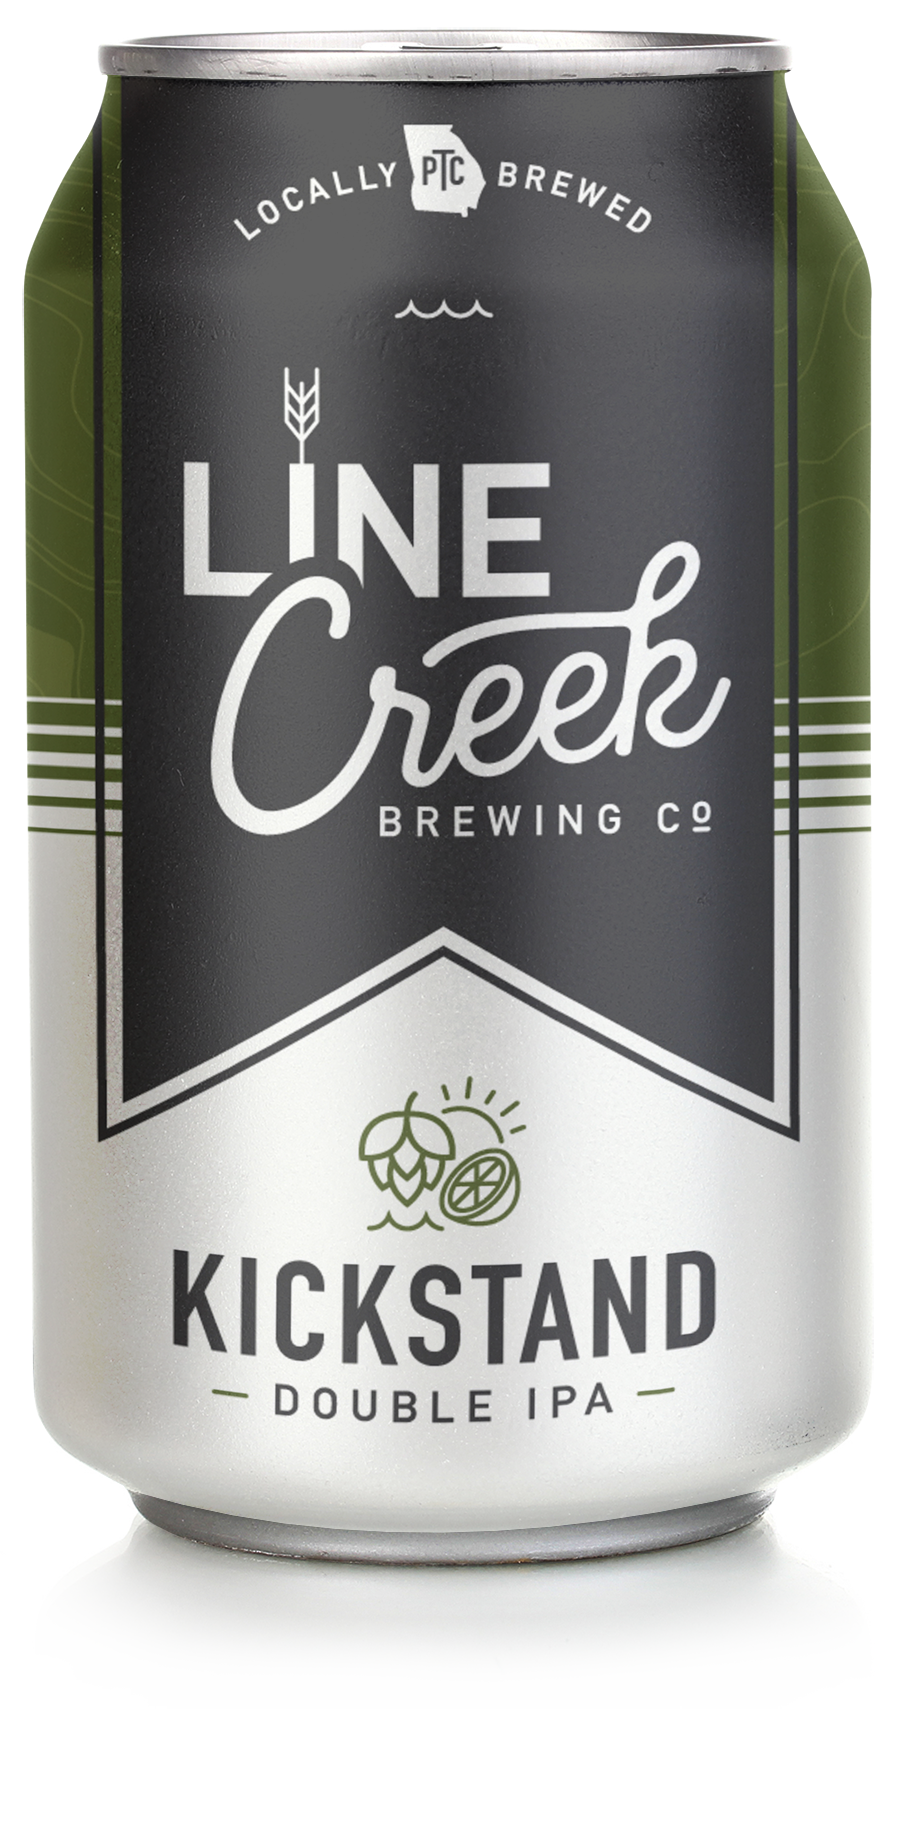 https://linecreekbrewing.com/wp-content/uploads/2019/03/kickstand.png